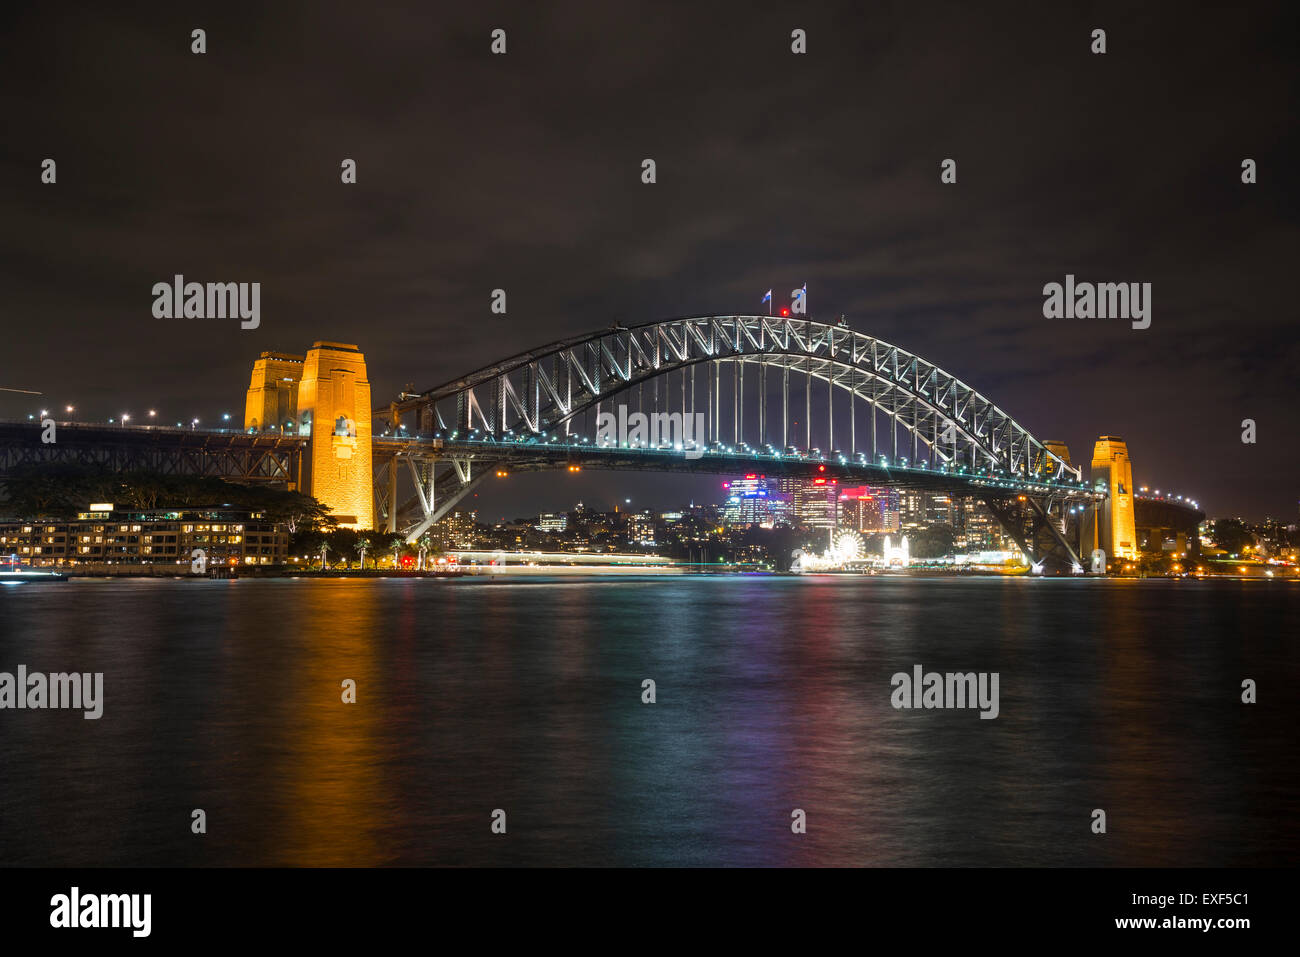 Harbour Bridge, Sydney, Australia - Stock Image